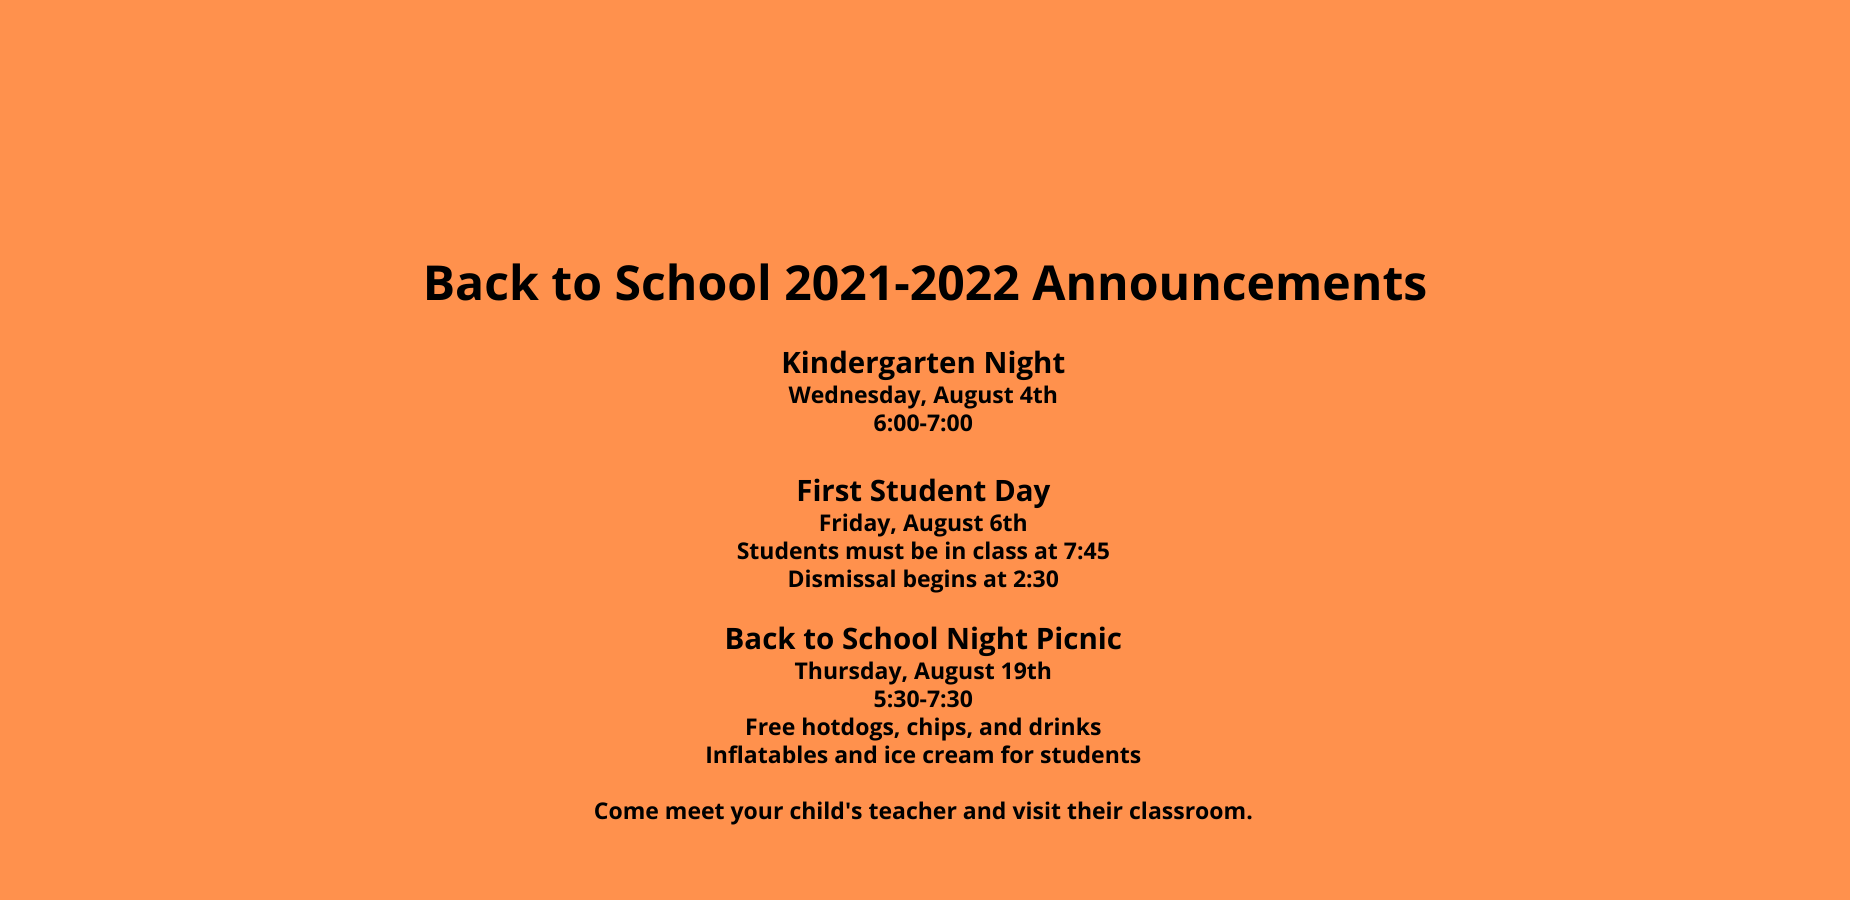 Back to School Announcements